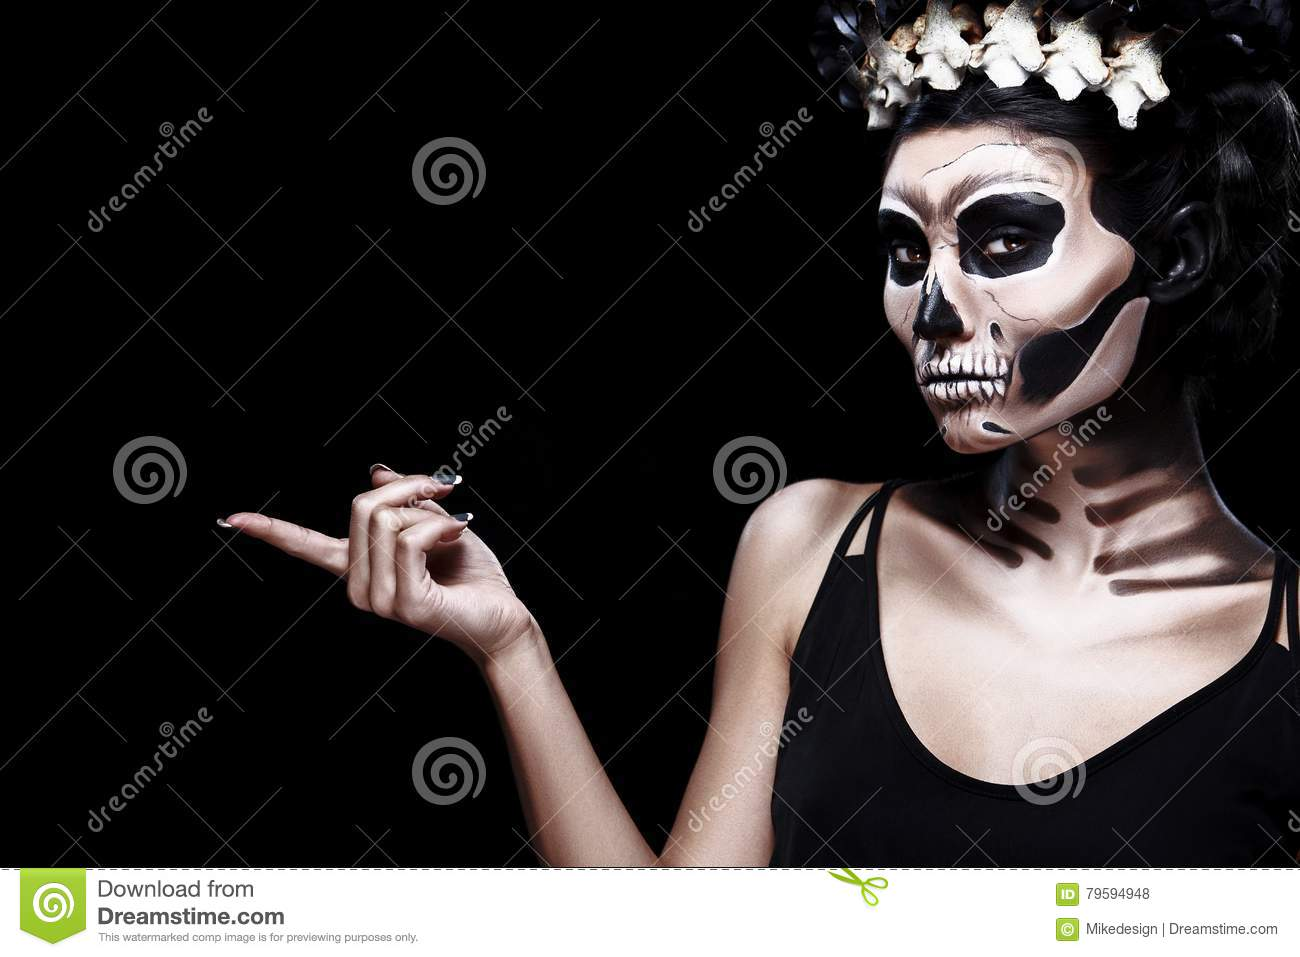 Woman in Halloween costume of Frida Kahlo with copy space. Skeleton or skull makeup.